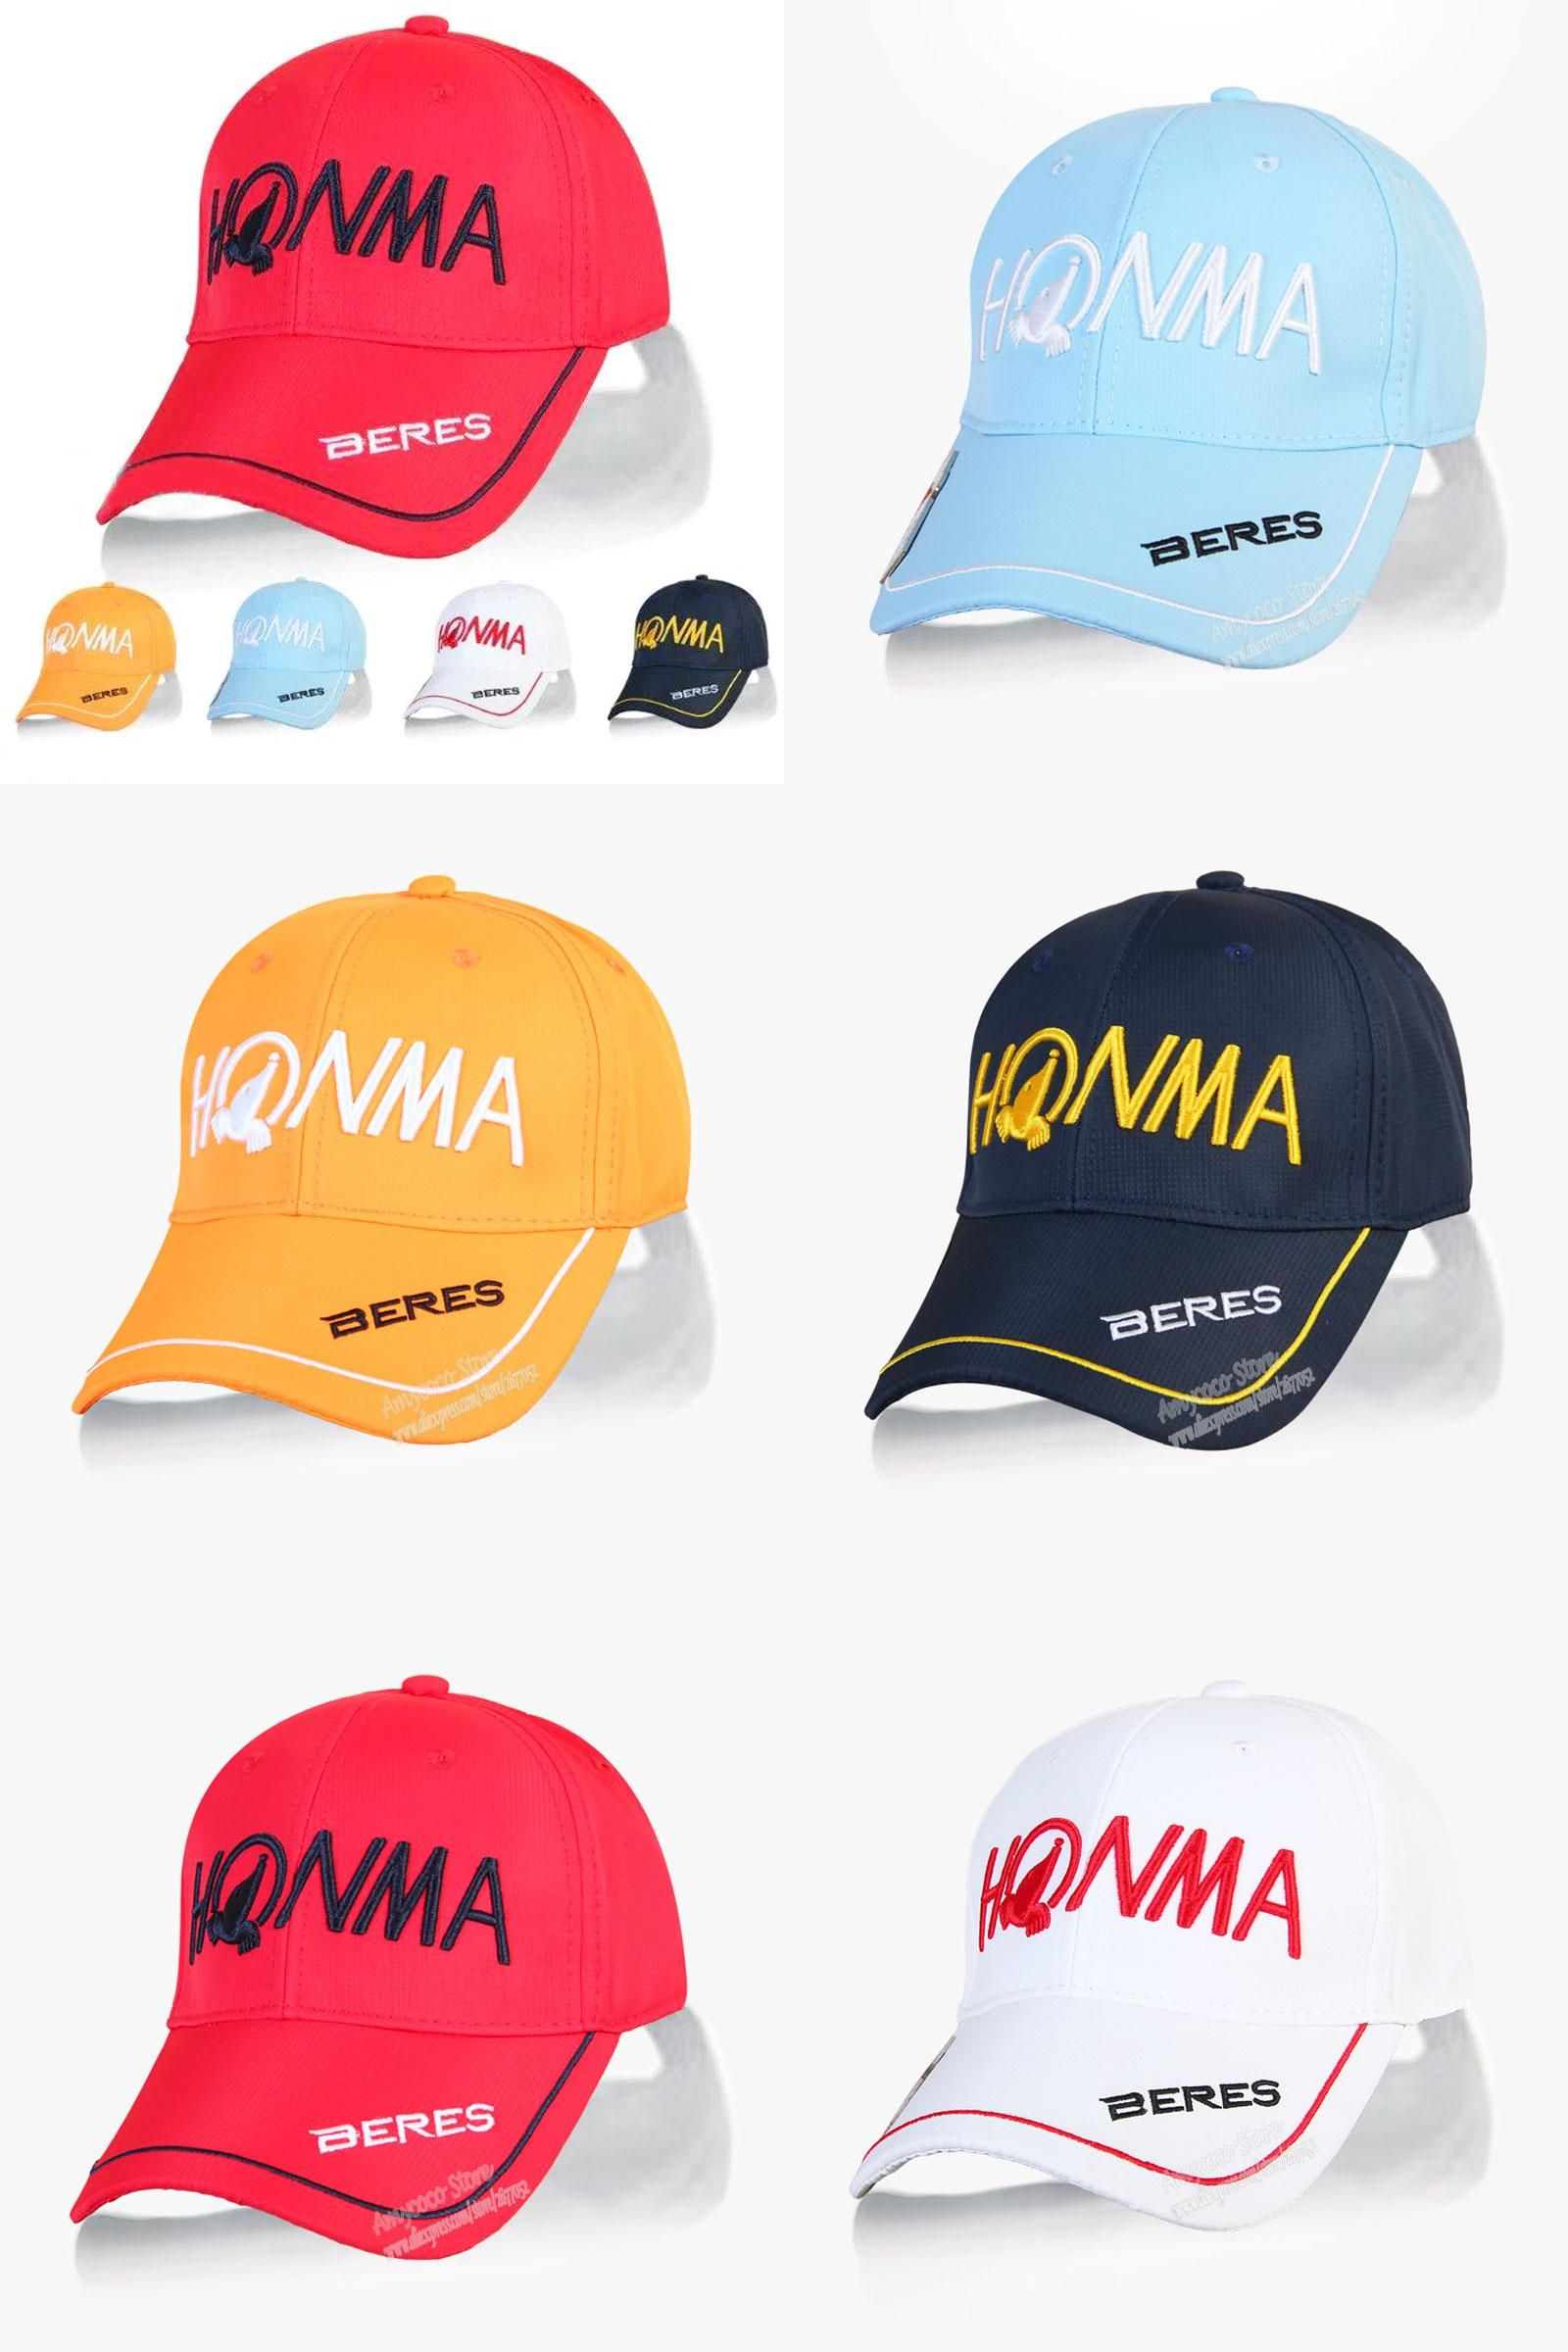 43d7cf63e40  Visit to Buy  New mens HONMA beres Golf hat 5 colors Sports Baseball cap